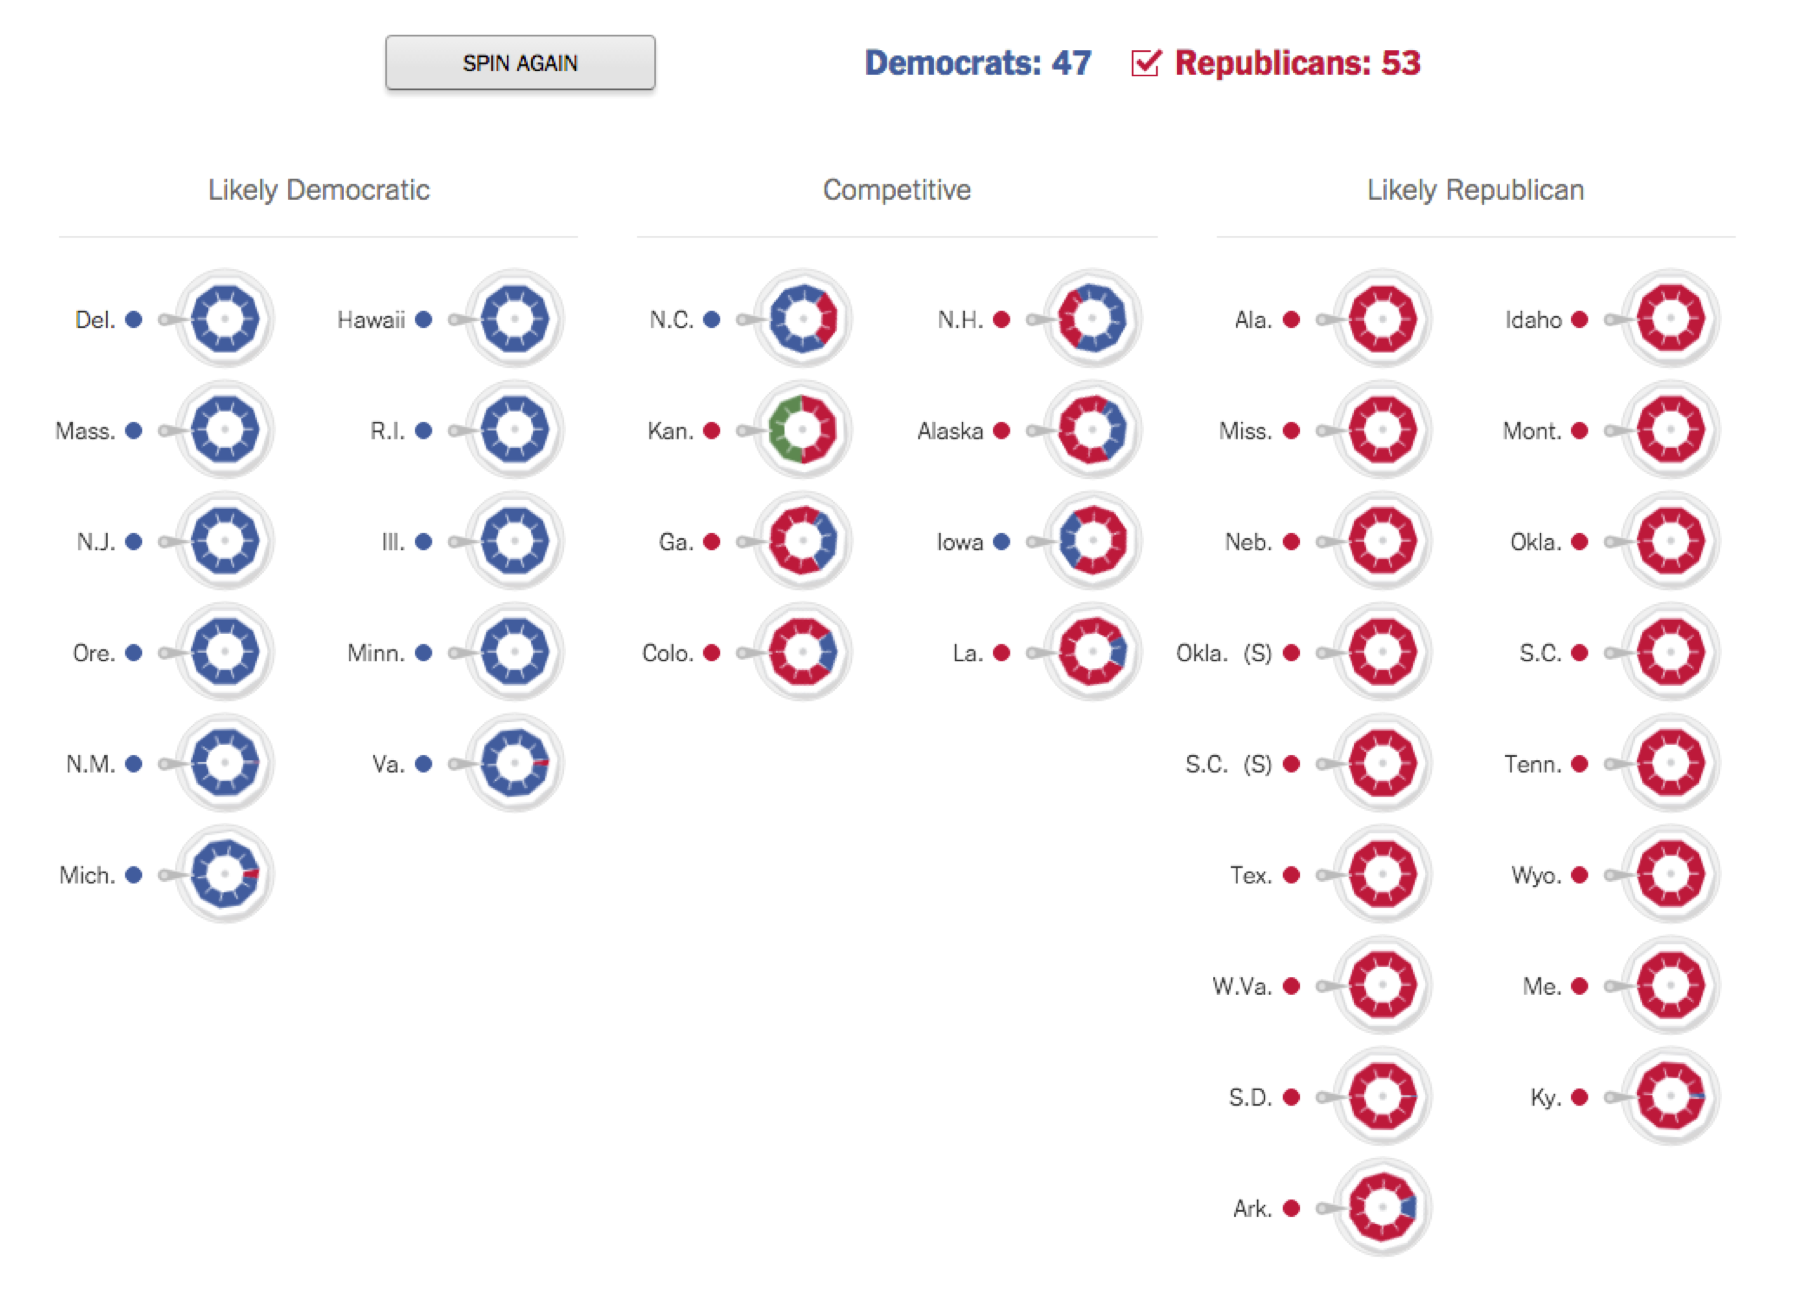 Small multiples visualization of senate probabilities.